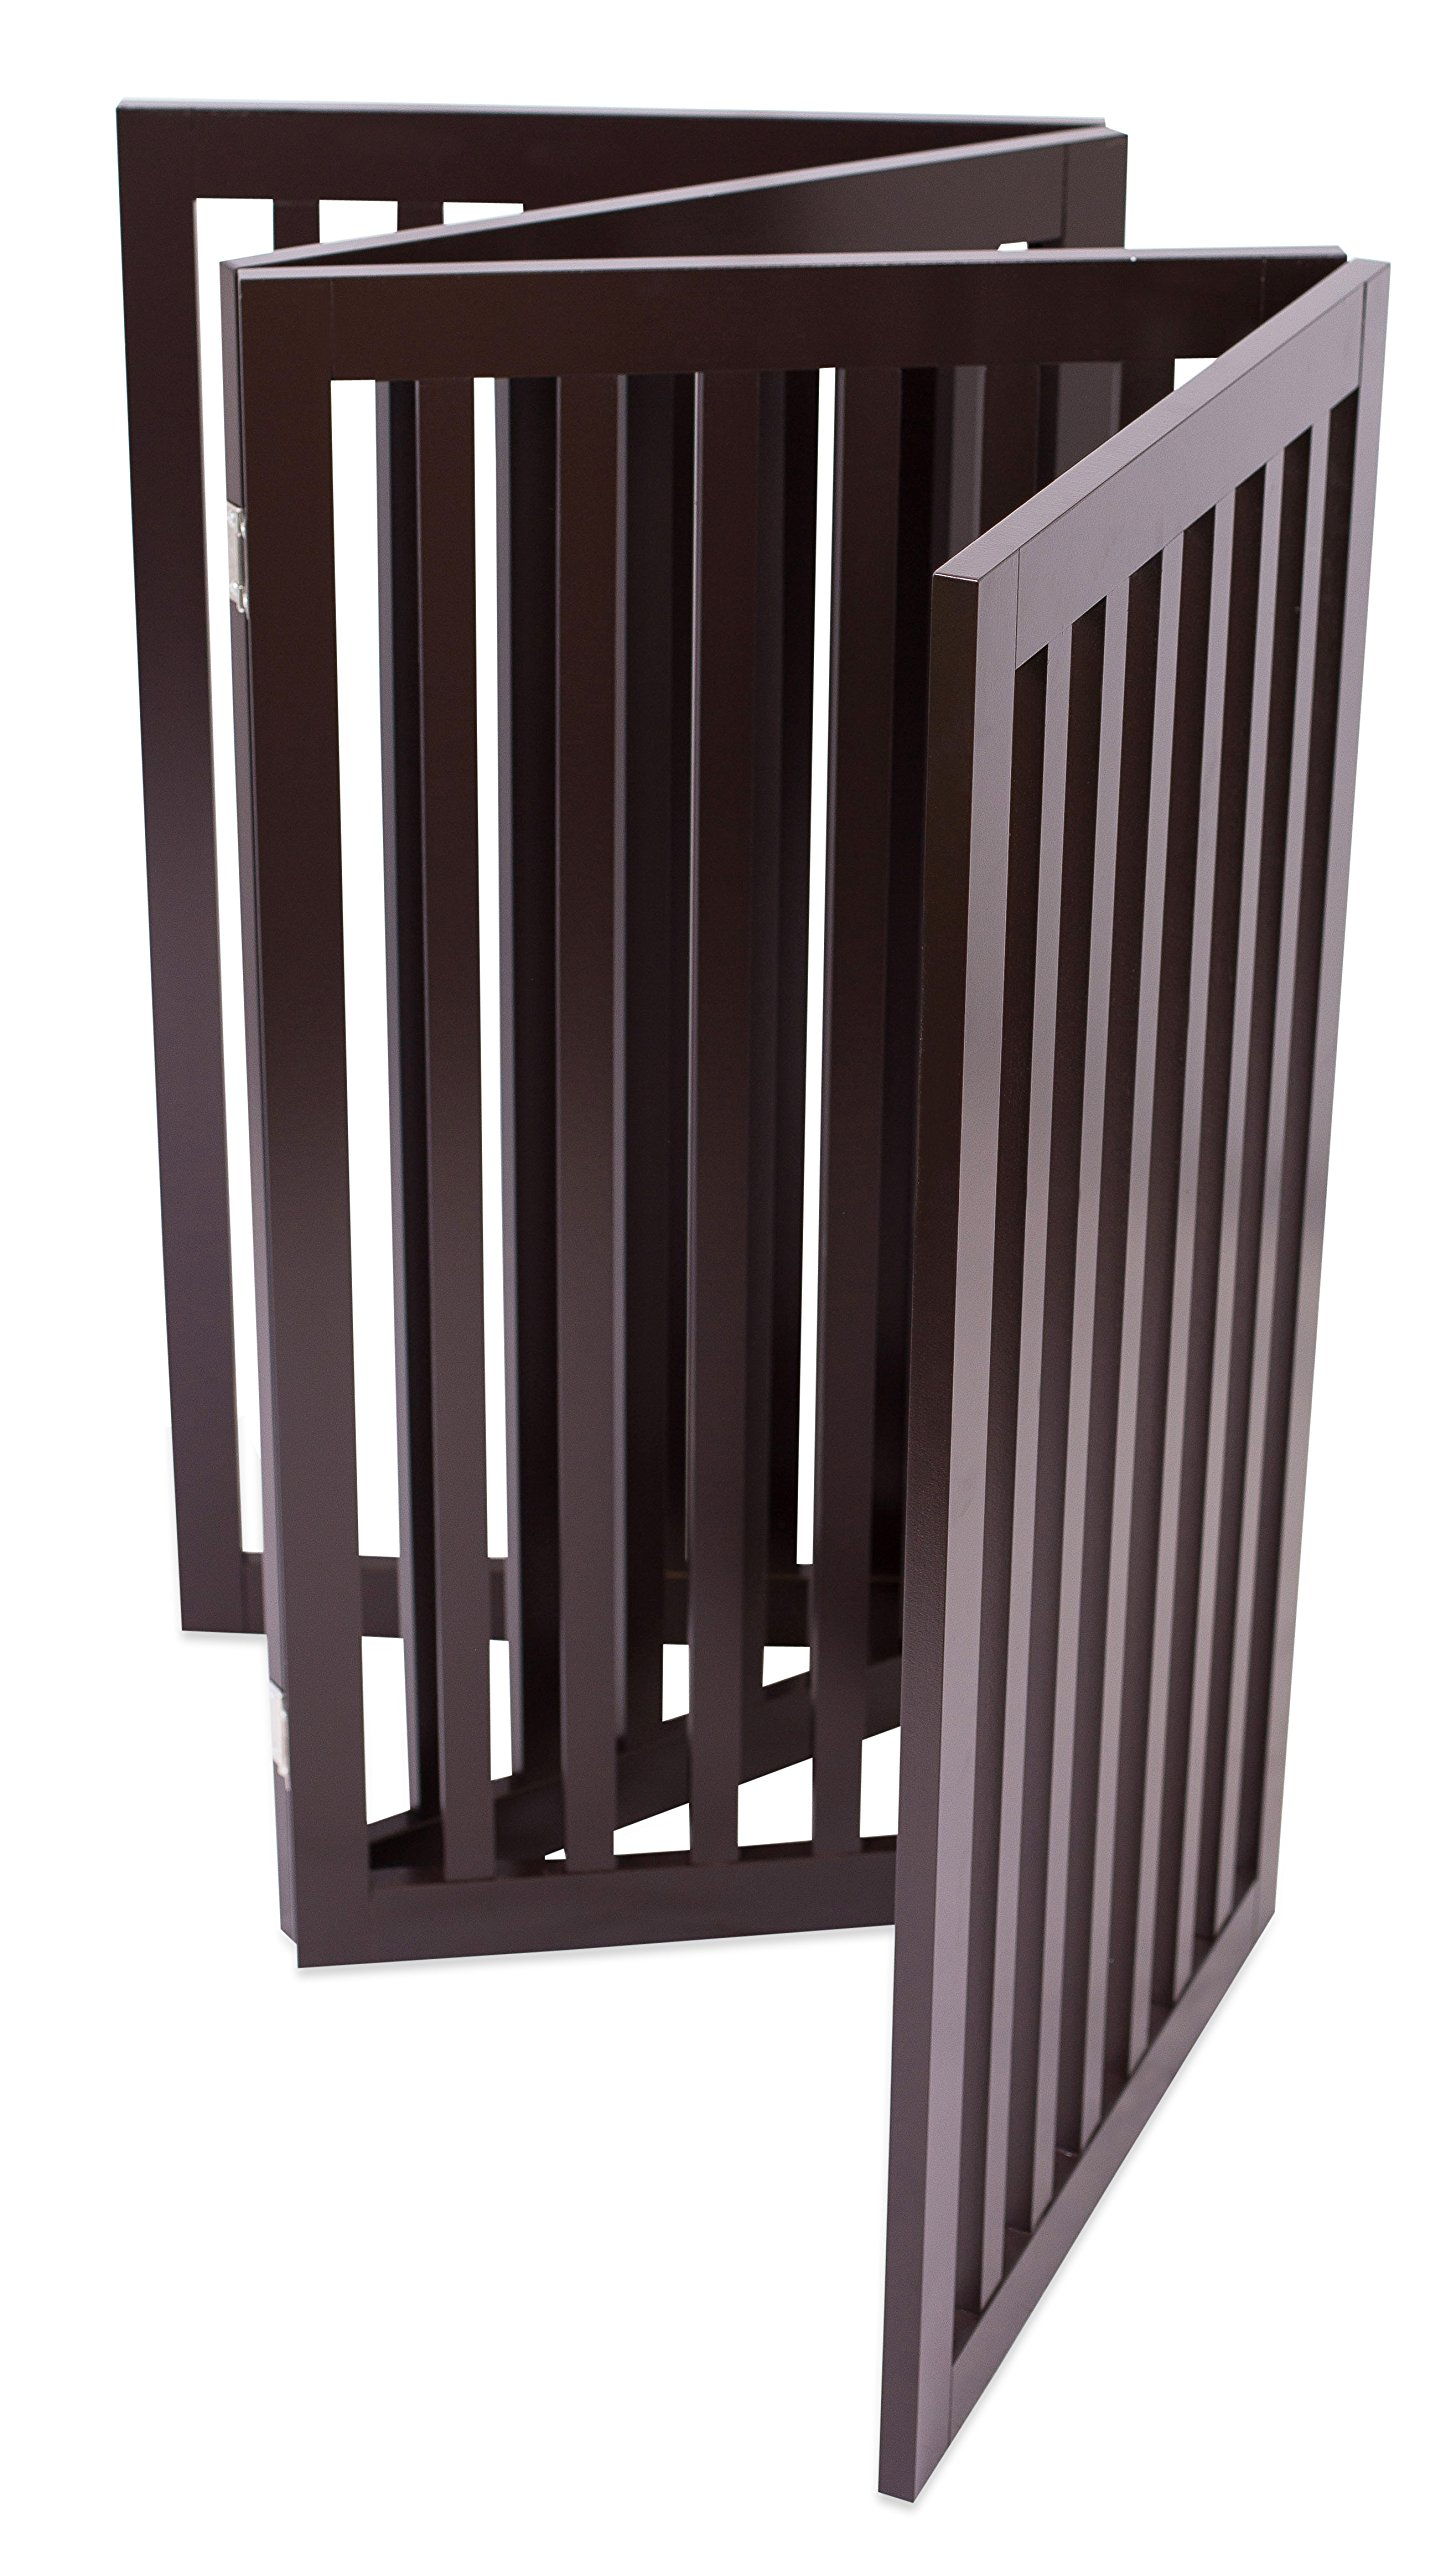 Internet's Best Traditional Pet Gate | 4 Panel | 36 Inch Tall Fence | Free Standing Folding Z Shape Indoor Doorway Hall Stairs Dog Puppy Gate | Fully Assembled | Espresso | Wooden by Internet's Best (Image #7)